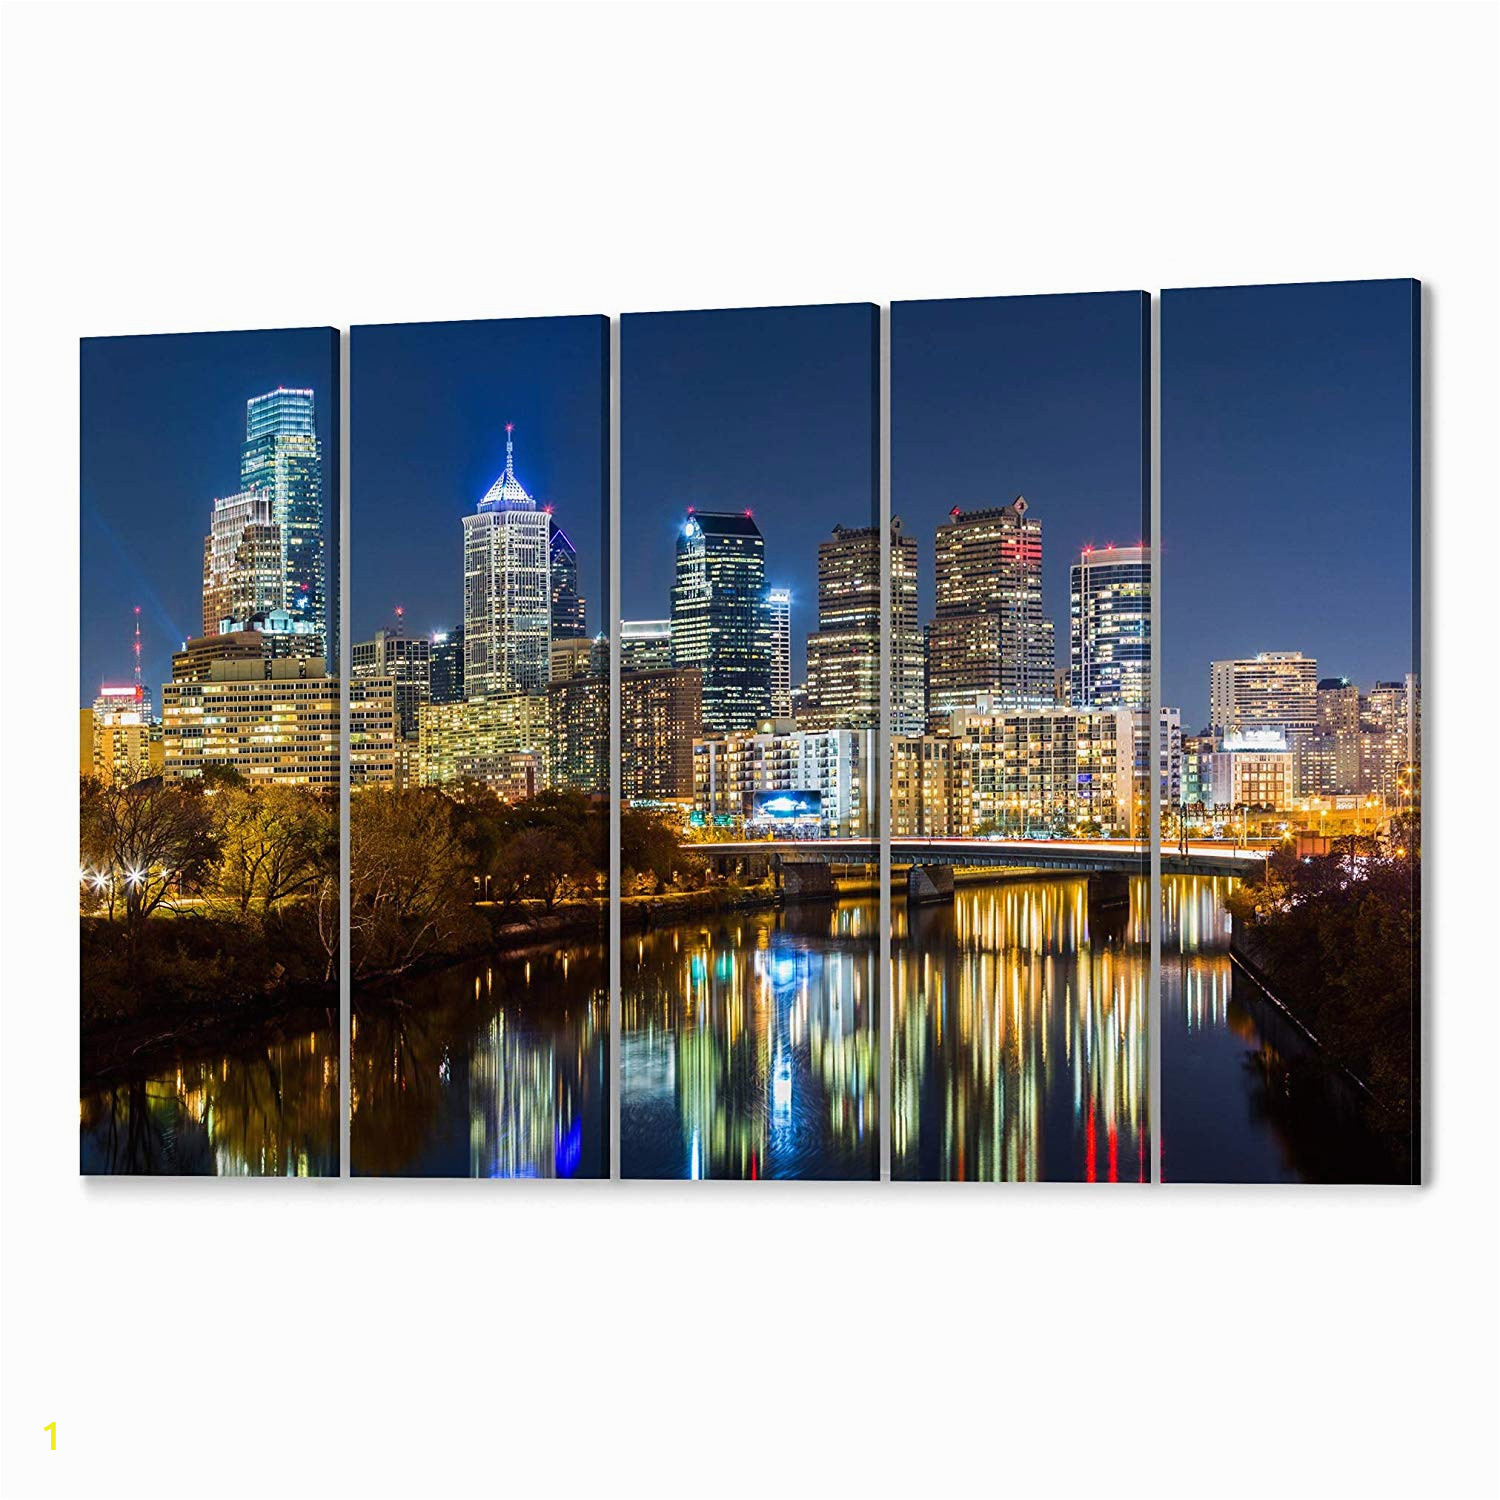 Philadelphia Skyline Wall Mural Amazon Philadelphia Skyline Wall Art Philadelphia